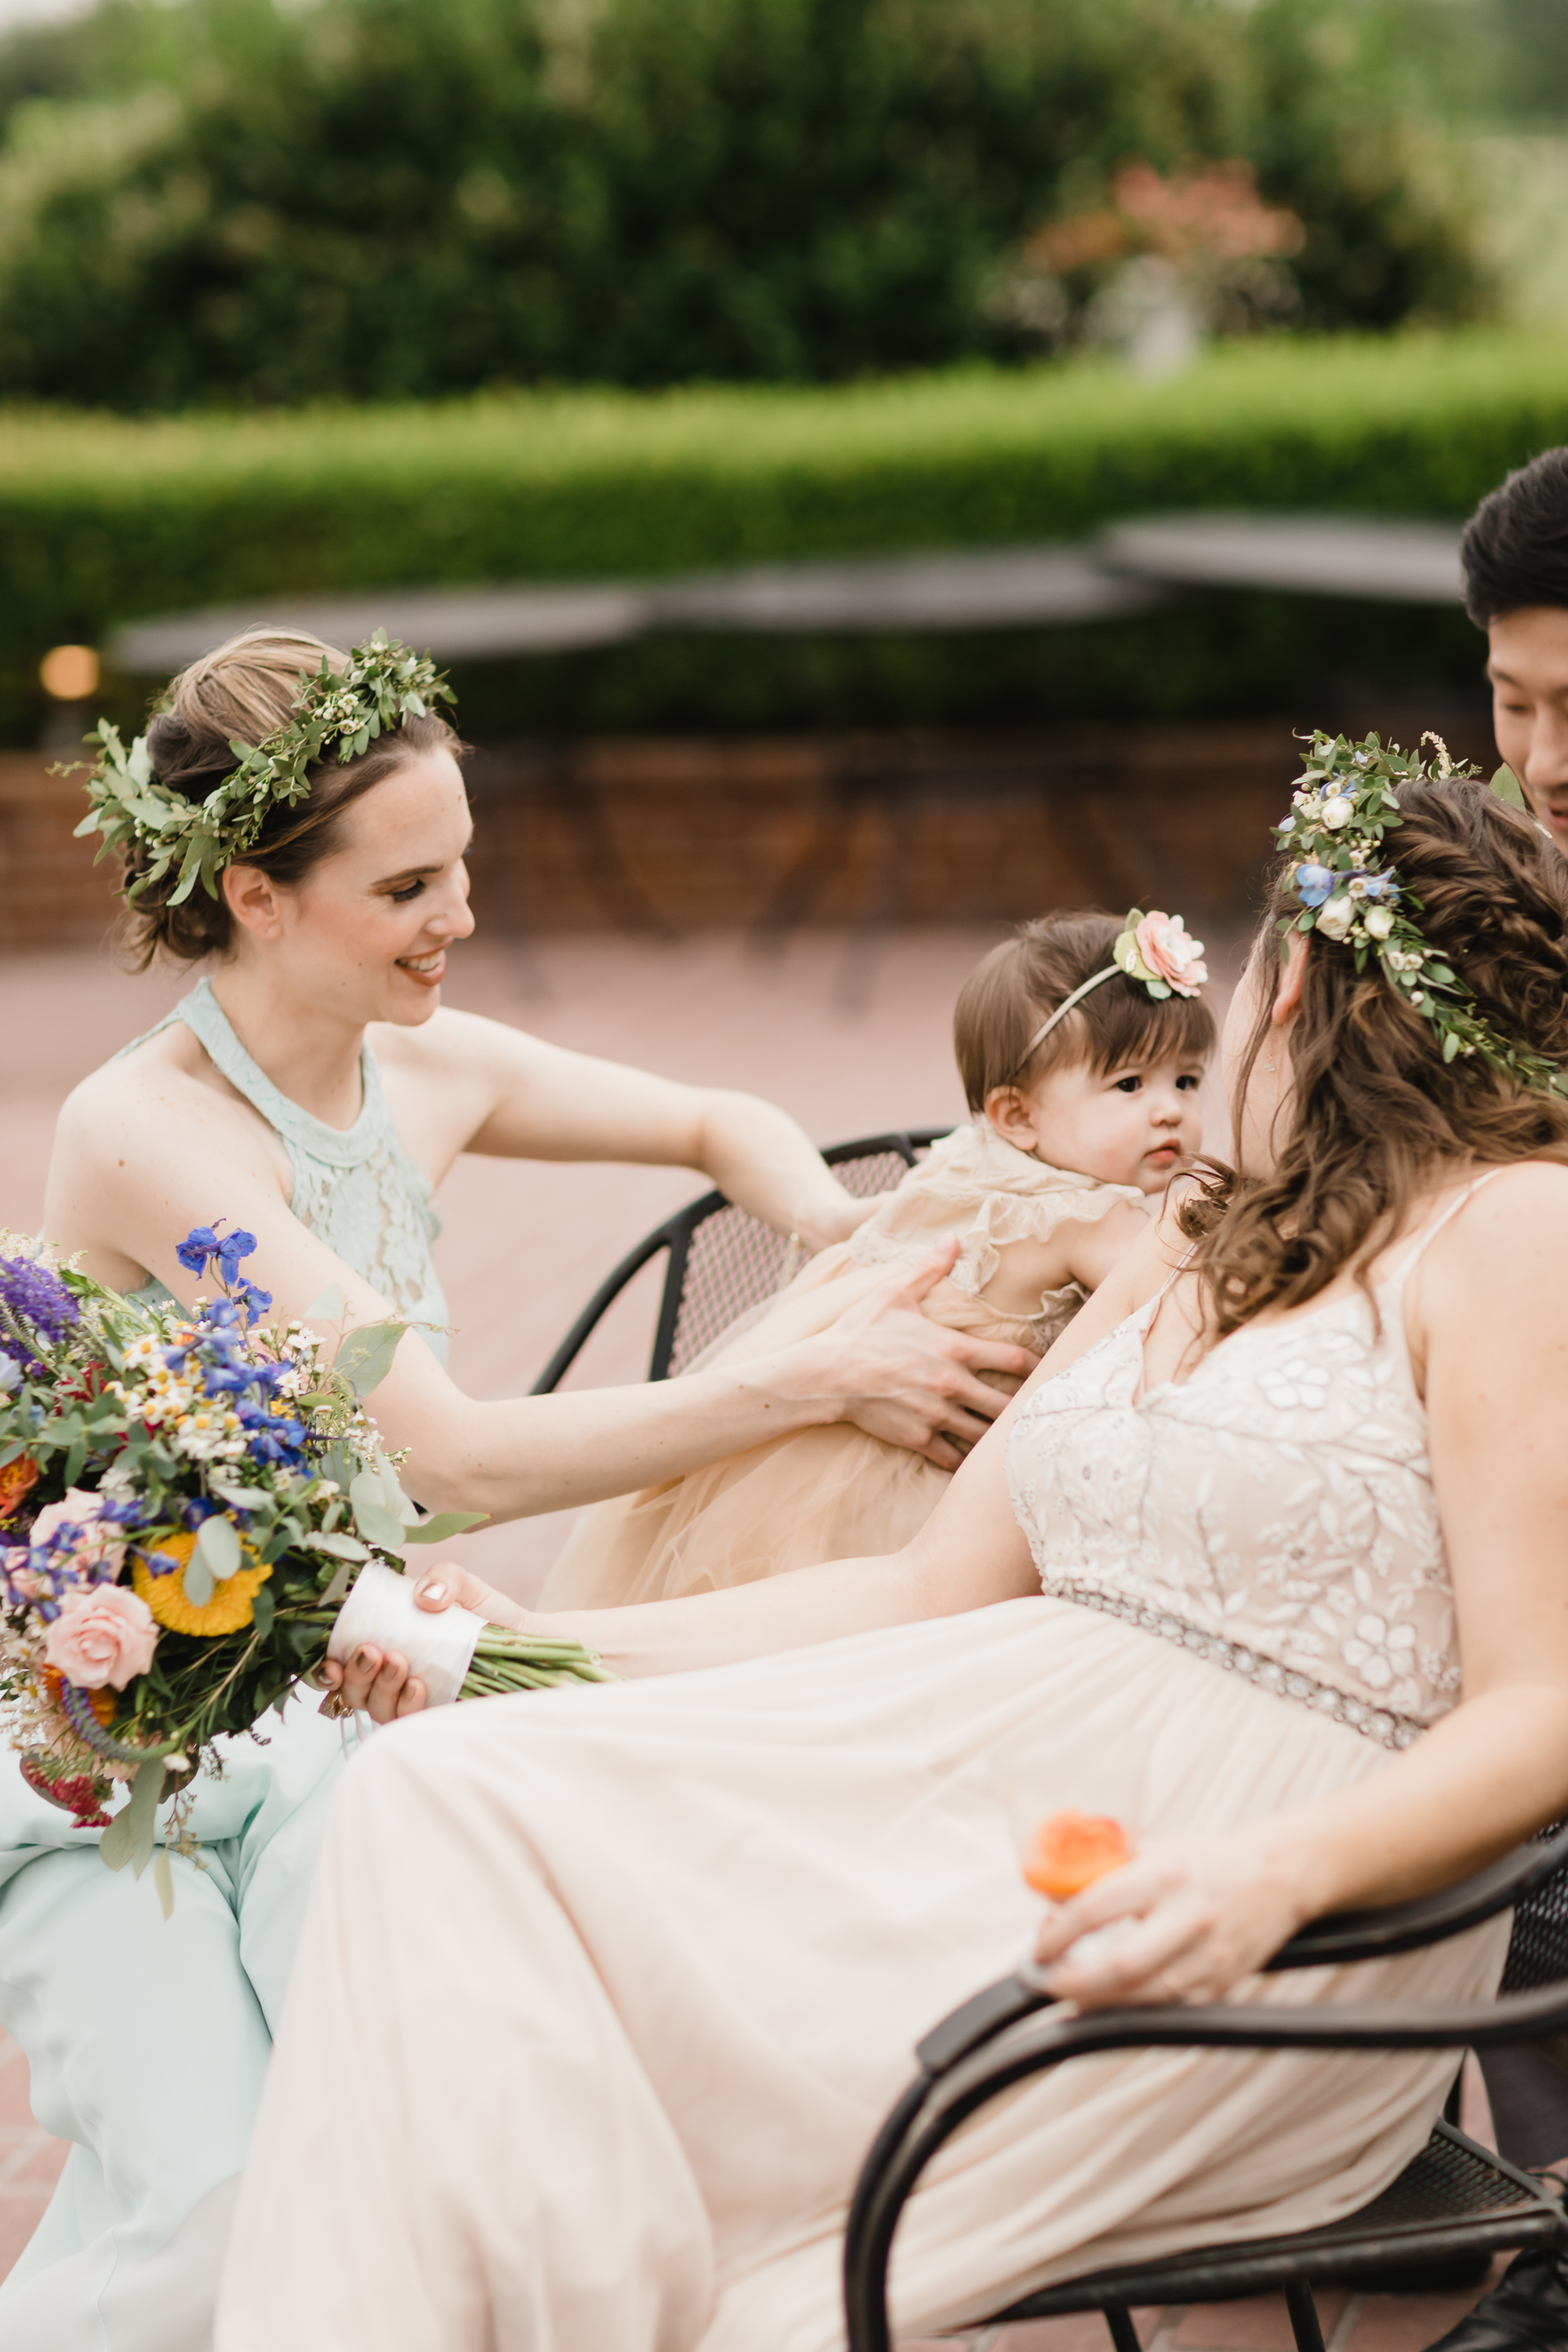 Gianna Keiko Atlanta NYC California Wedding Photographer_Sneak Peek-42.jpg